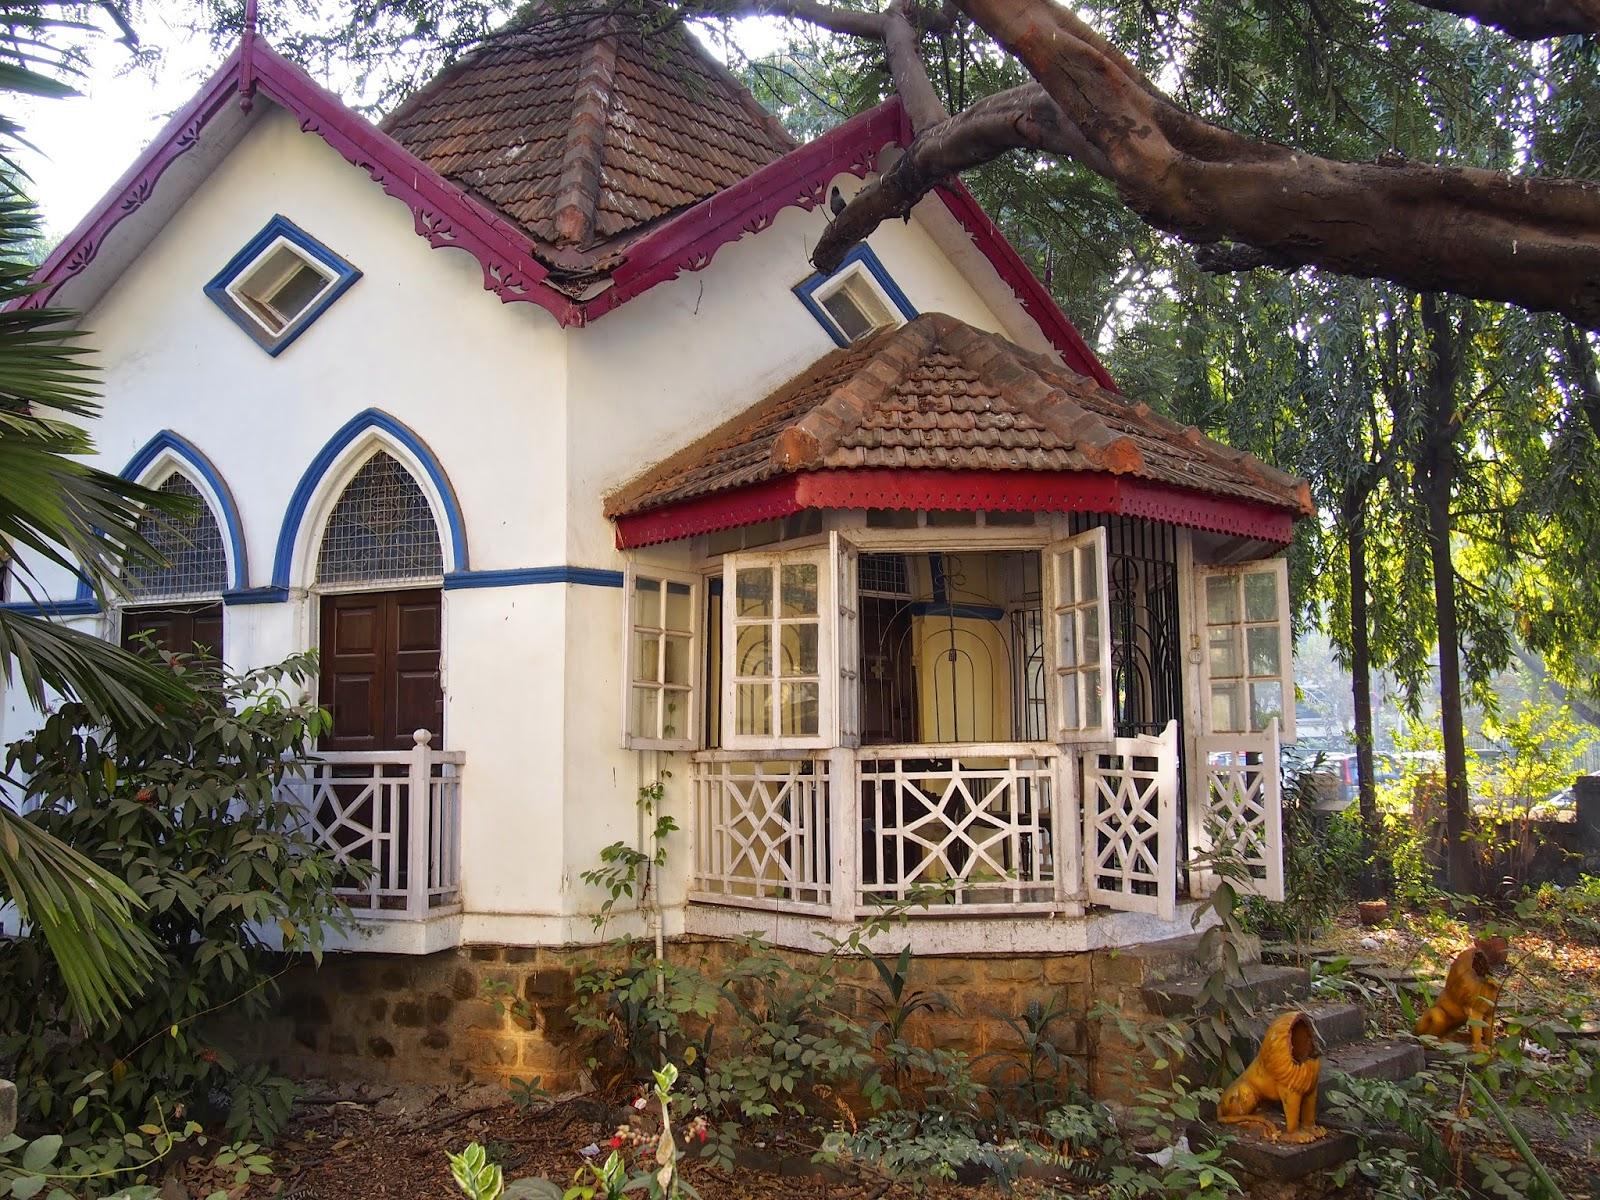 india bungalows of bandra bombay 39 s vanishing heritage minor sights. Black Bedroom Furniture Sets. Home Design Ideas